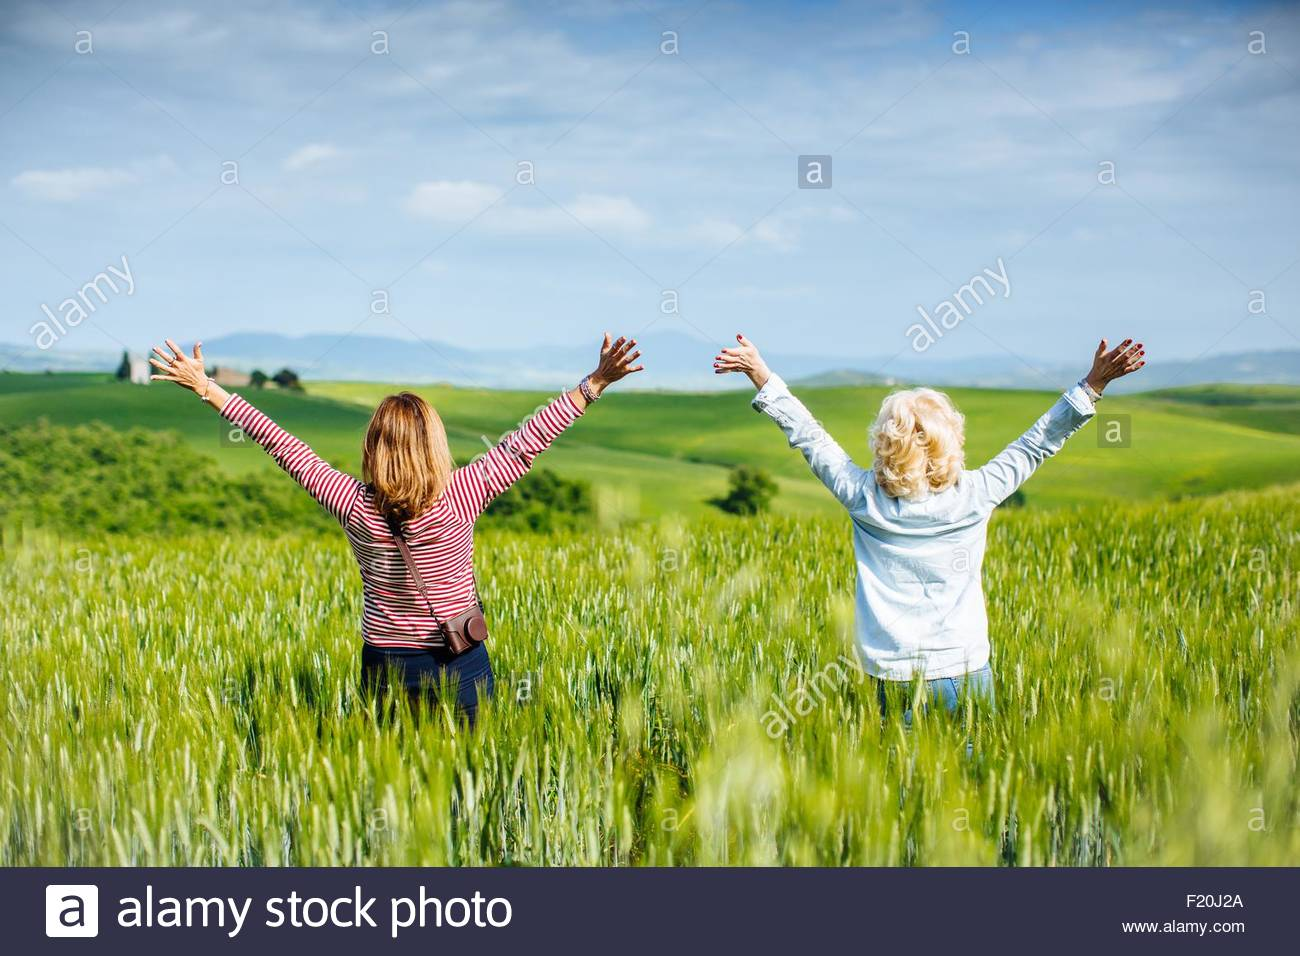 Rear view of mature female friends with arms raised in wheatfield, Tuscany, Italy - Stock Image